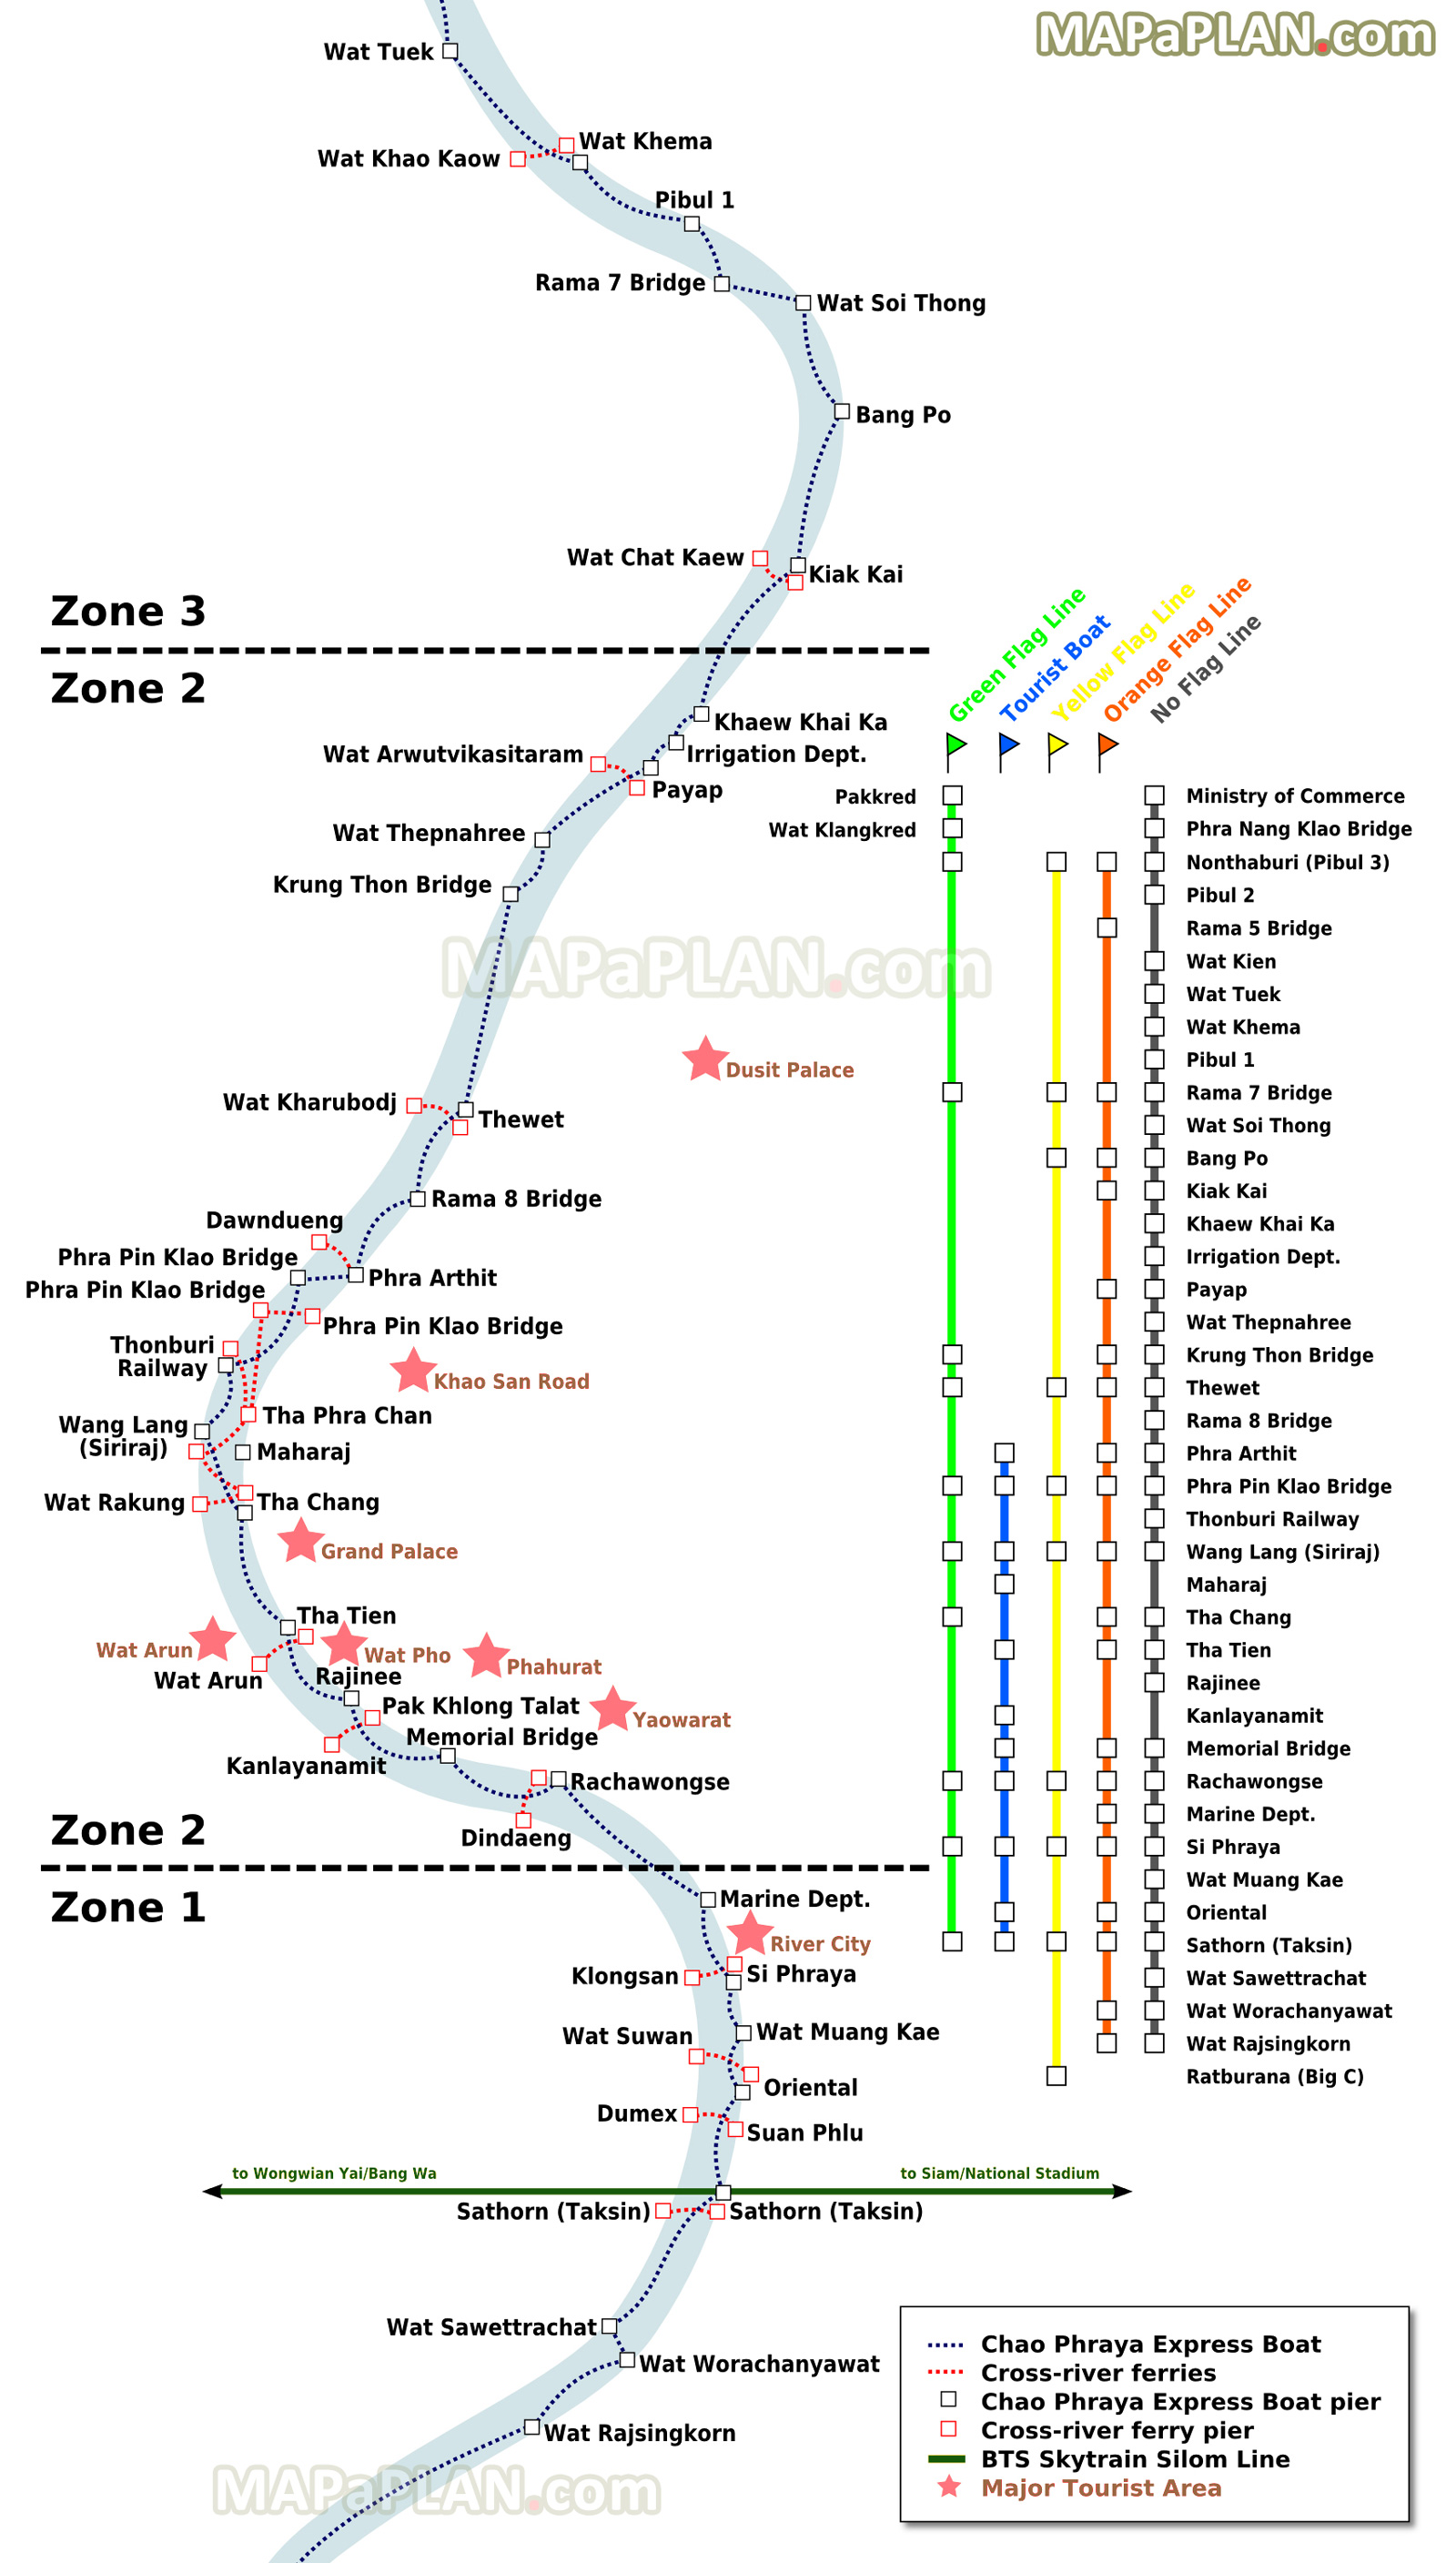 Map of Chao Phraya River ferries and water-taxi routes in Bangkok, Thailand